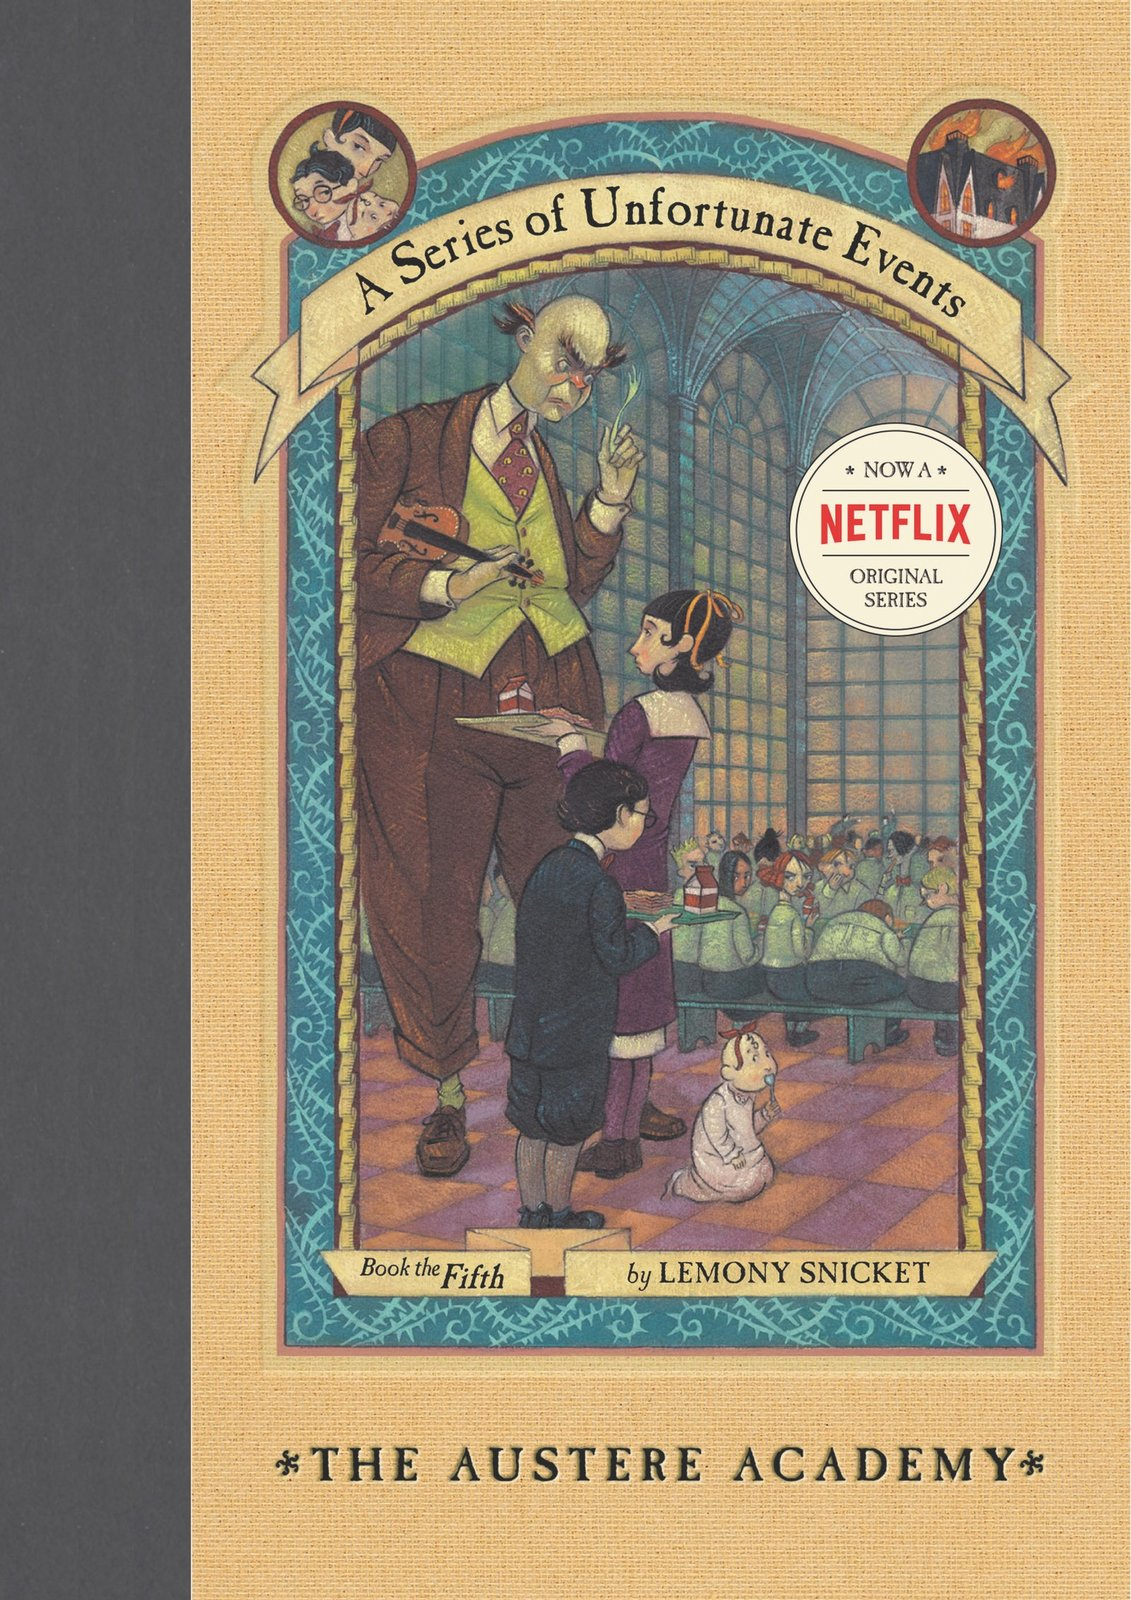 The Austere Academy (A Series of Unfortunate Events #5) by Lemony Snicket image